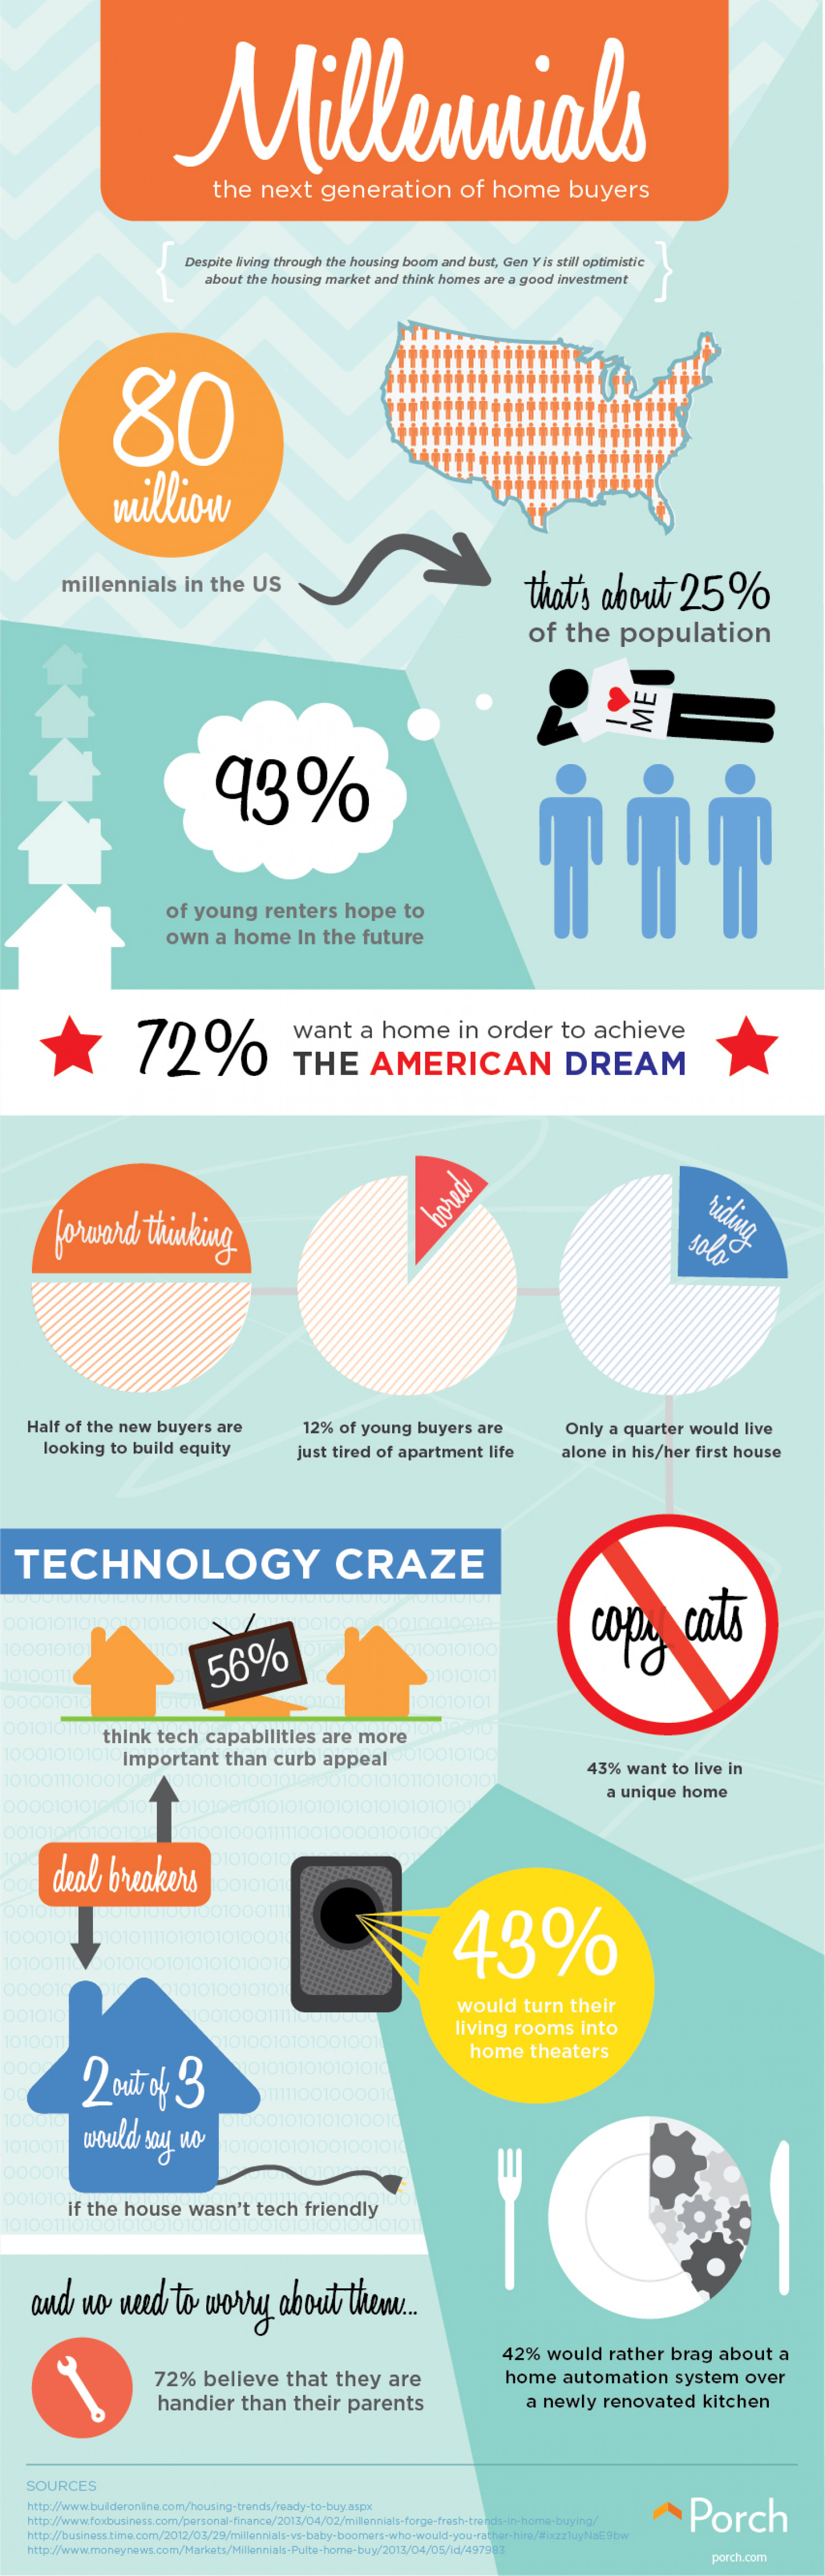 Millennials: The Next Generation of Home Buyers Infographic